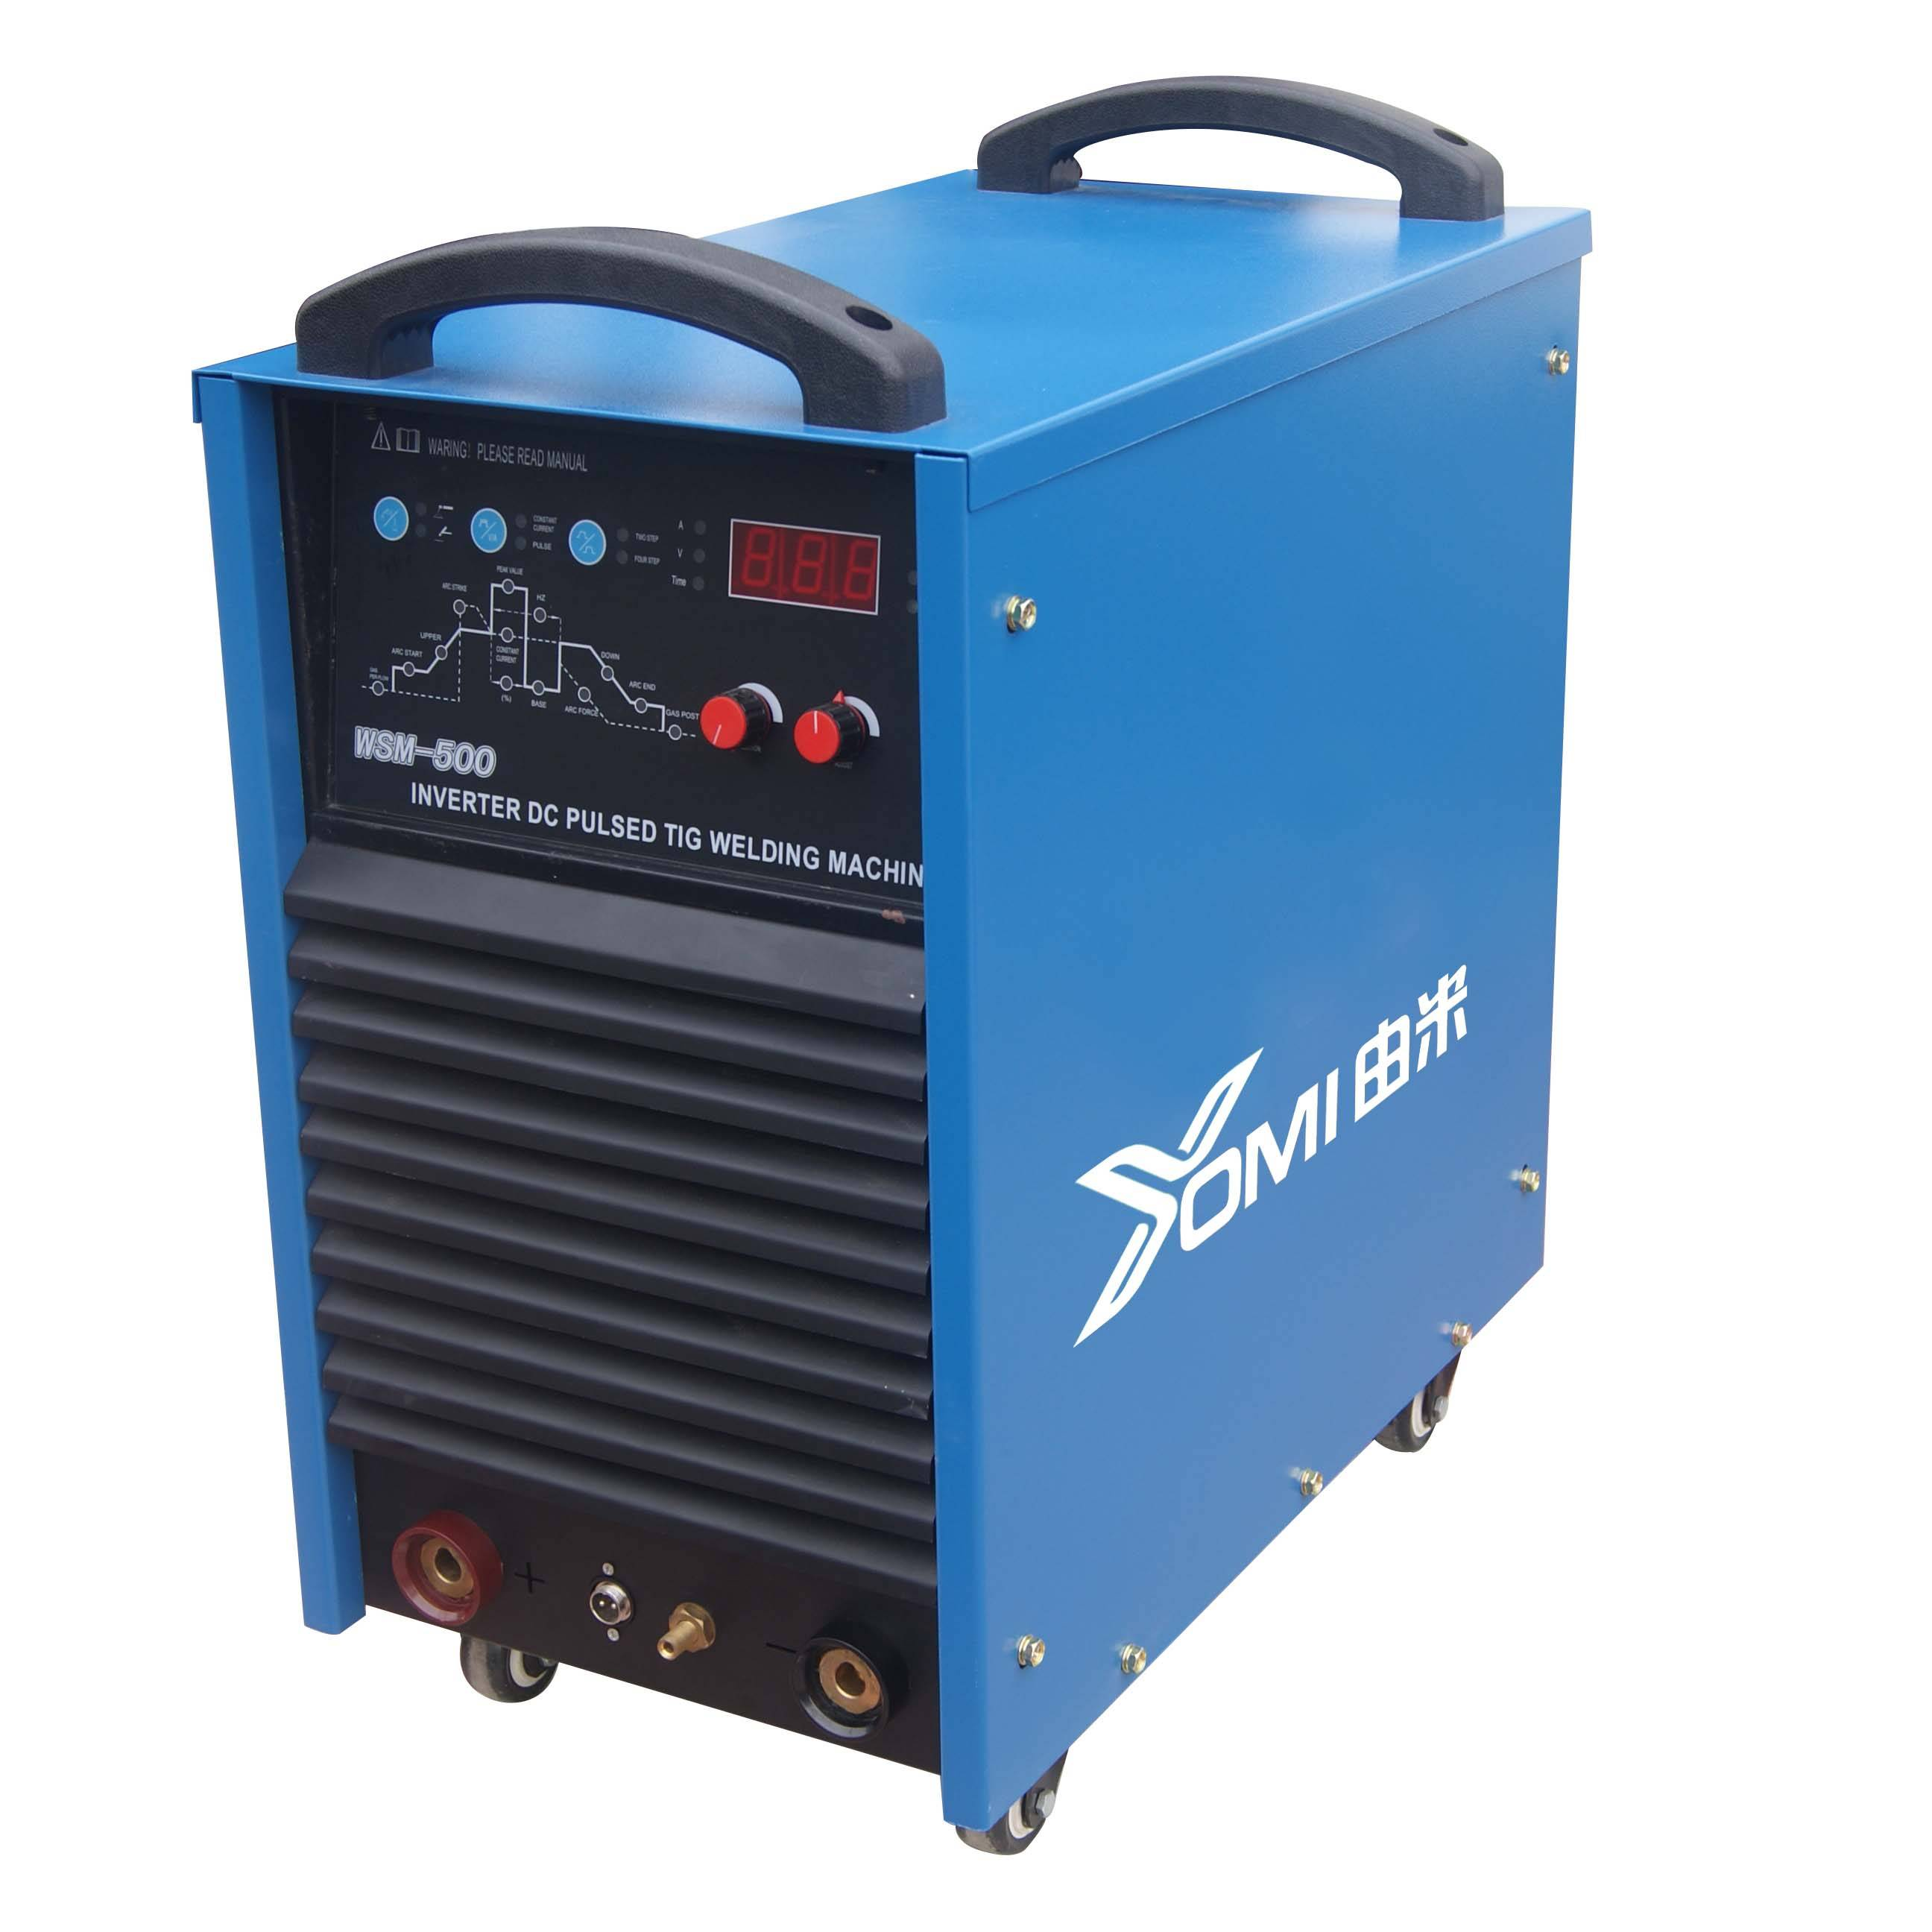 Hot sale Trimming Shears Machine -